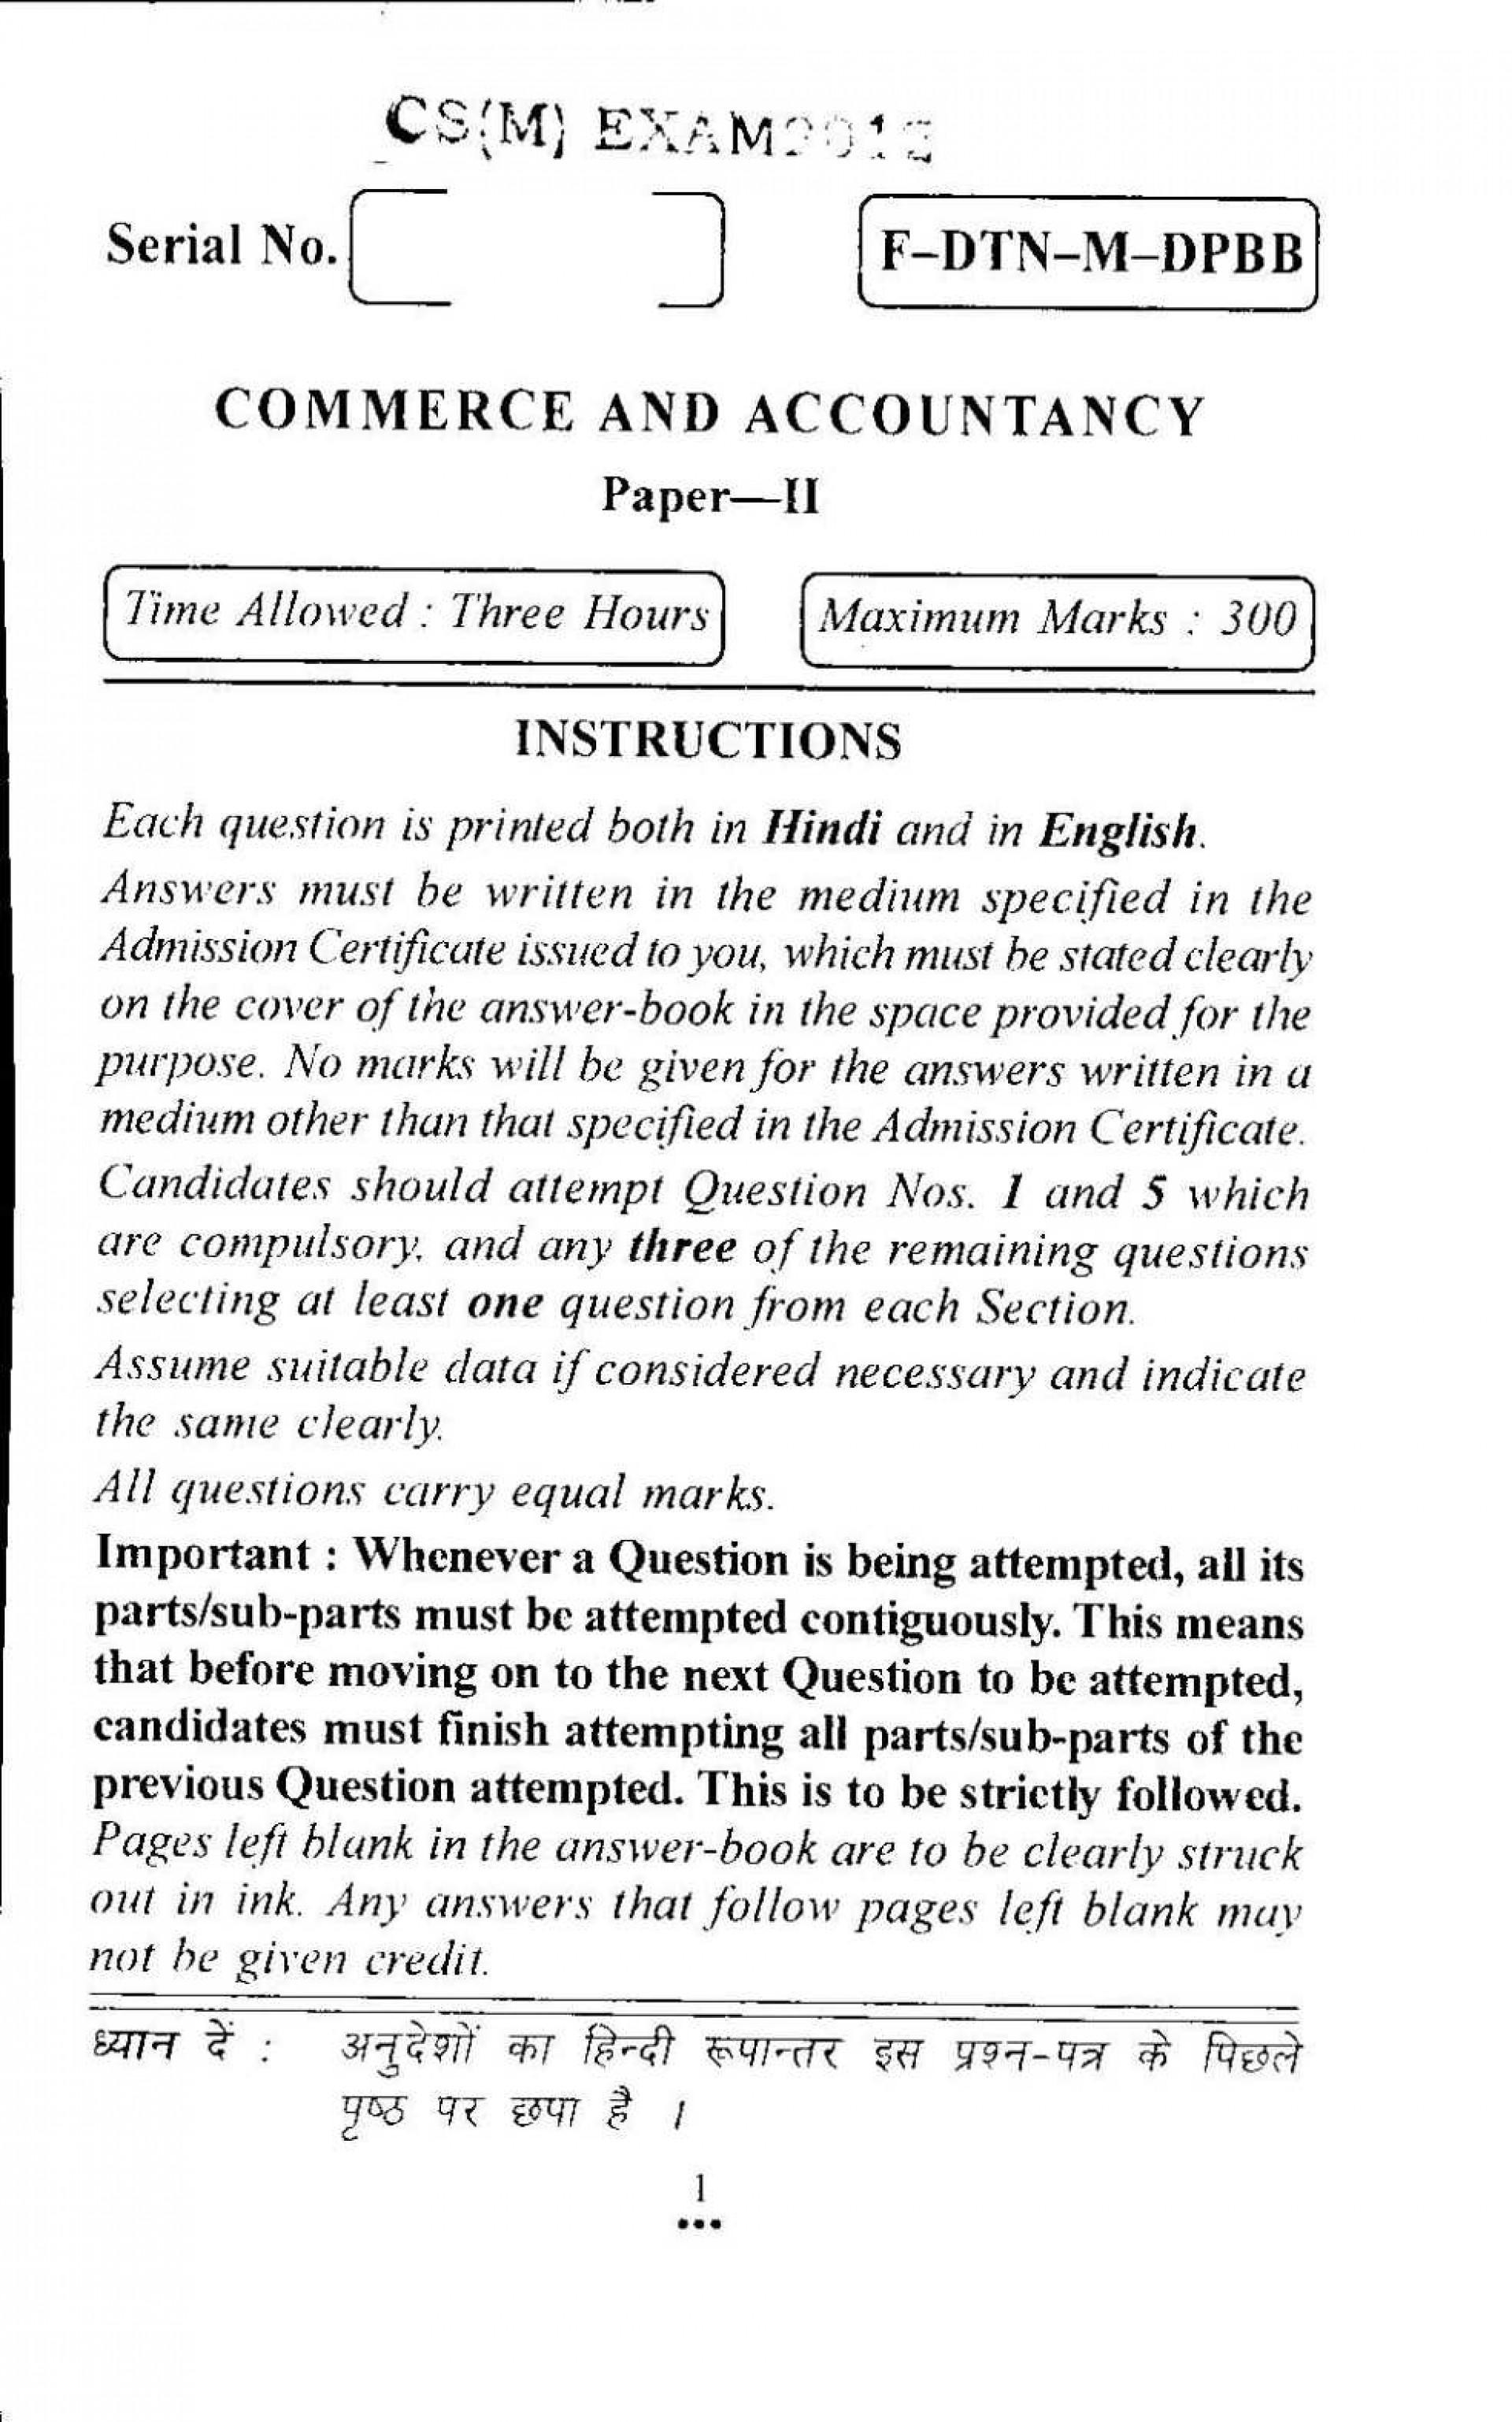 009 Essays On Racism Essay Example Civil Services Examination Commerce And Accountancy Paper Ii Previous Years Que Unbelievable In Schools Best Argumentative 1920